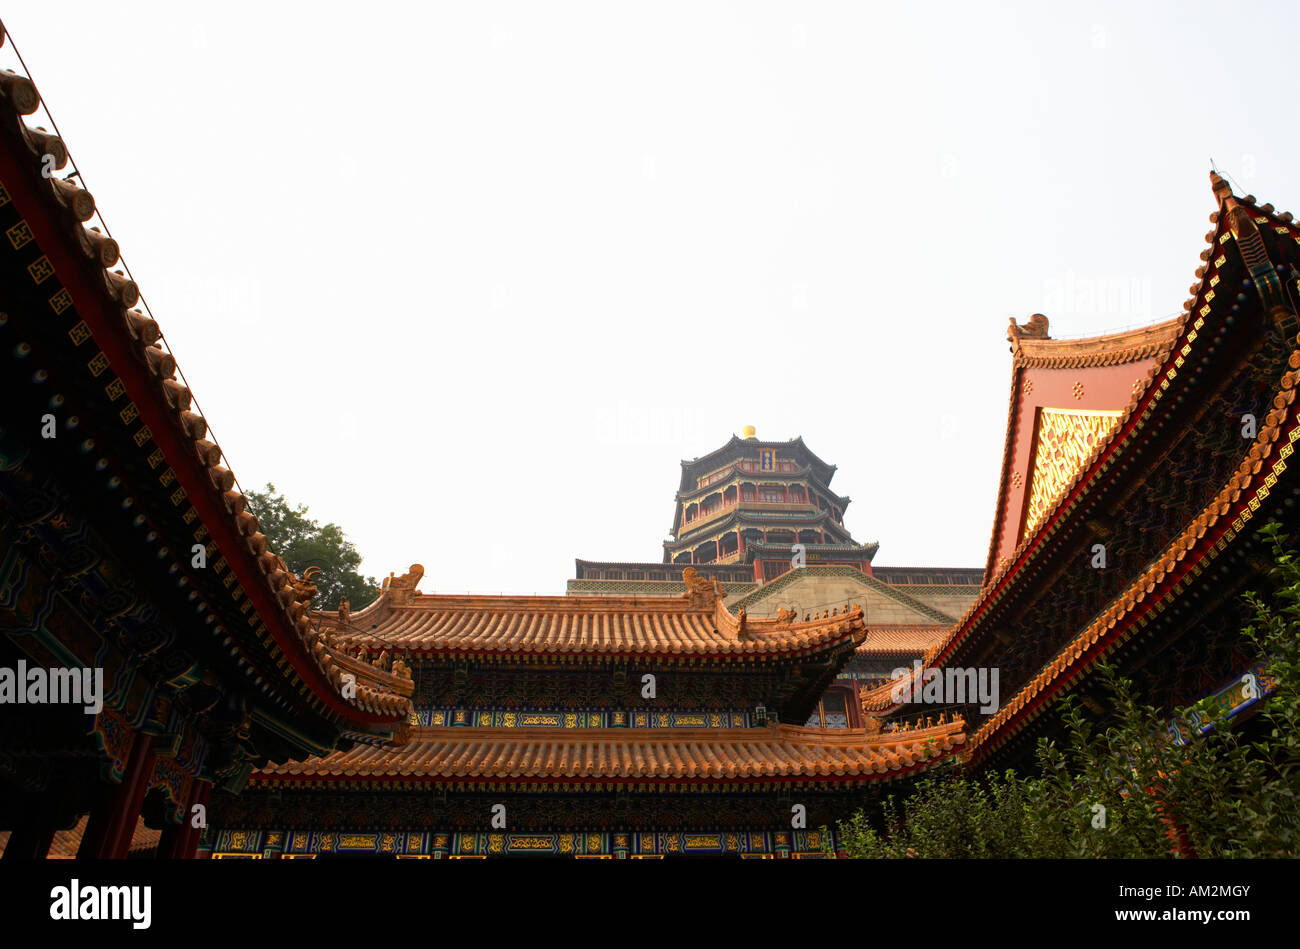 Hall that Dispels the Clouds and Tower of the Fragrance of the Buddha Summer Palace Yihe Yuan Beijing China - Stock Image